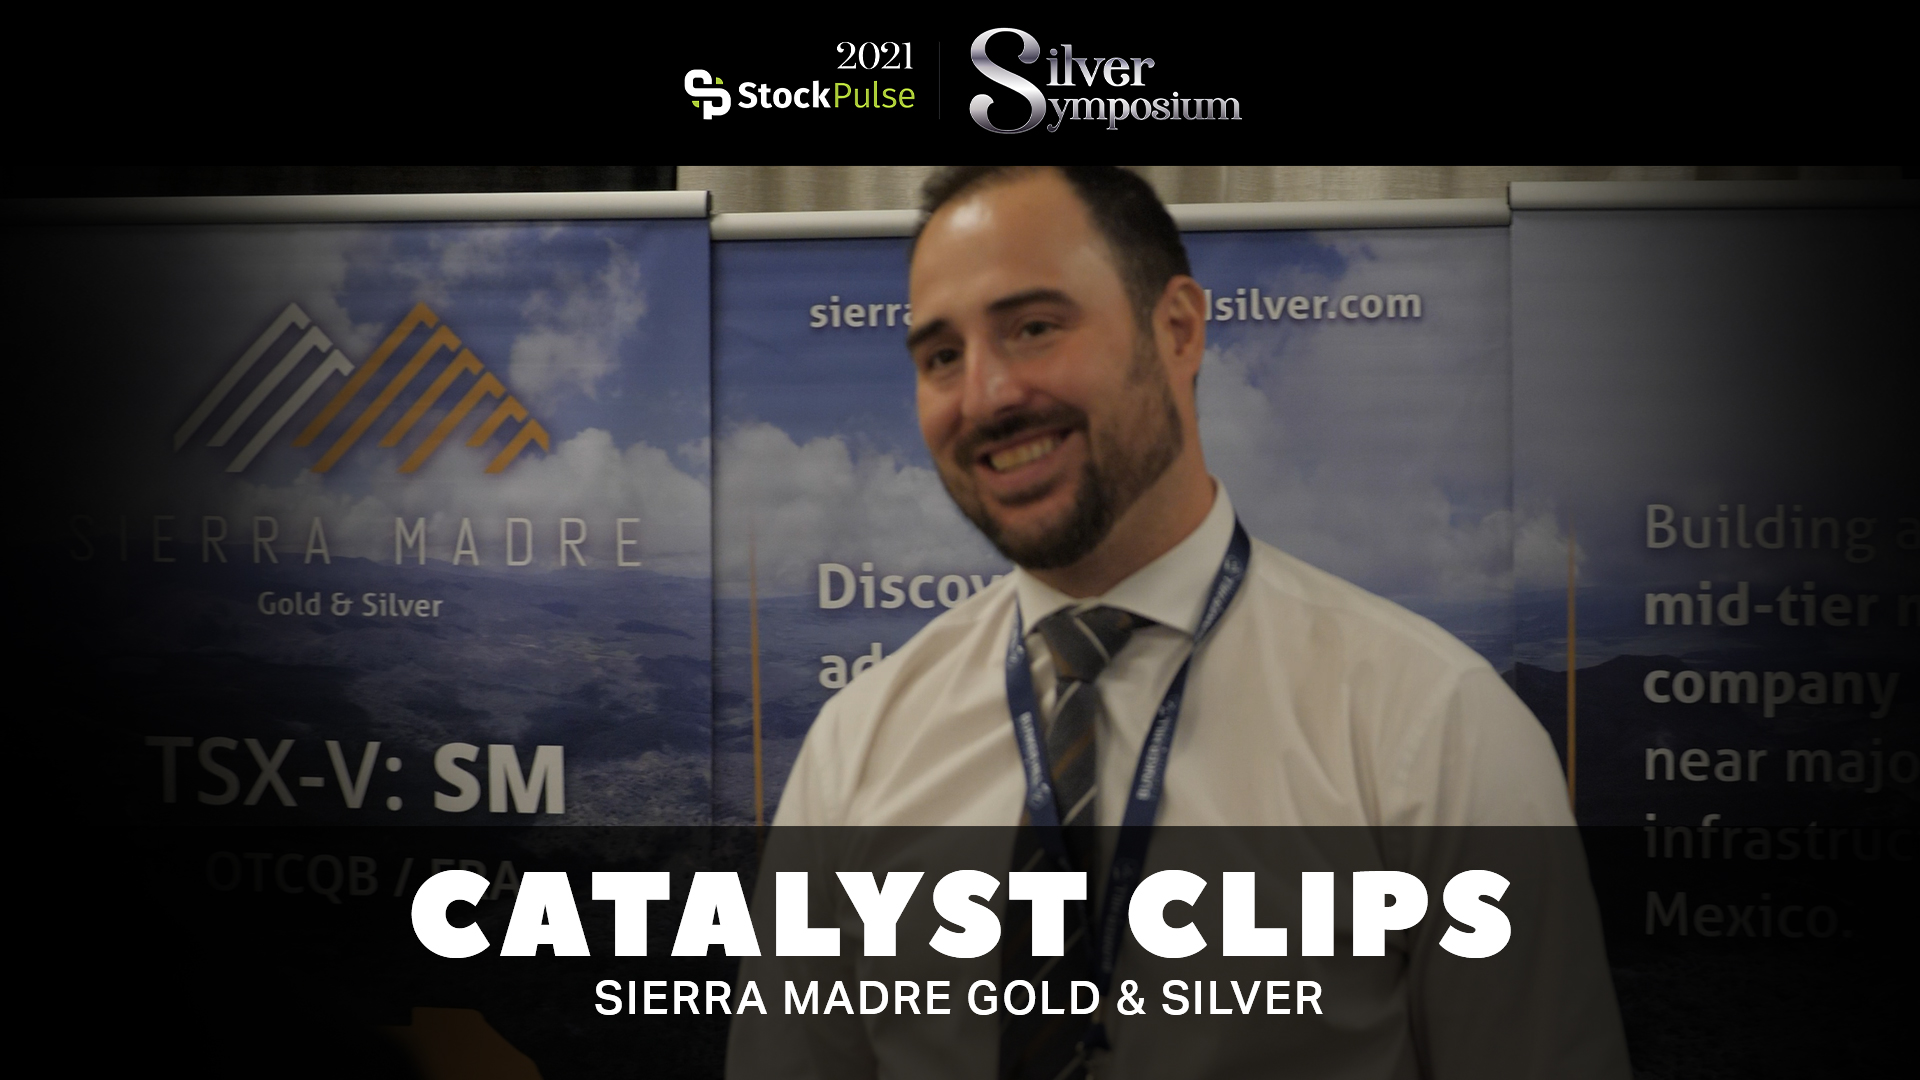 2021 StockPulse Silver Symposium Catalyst Clips | Alex Langer of Sierra Madre Gold & Silver